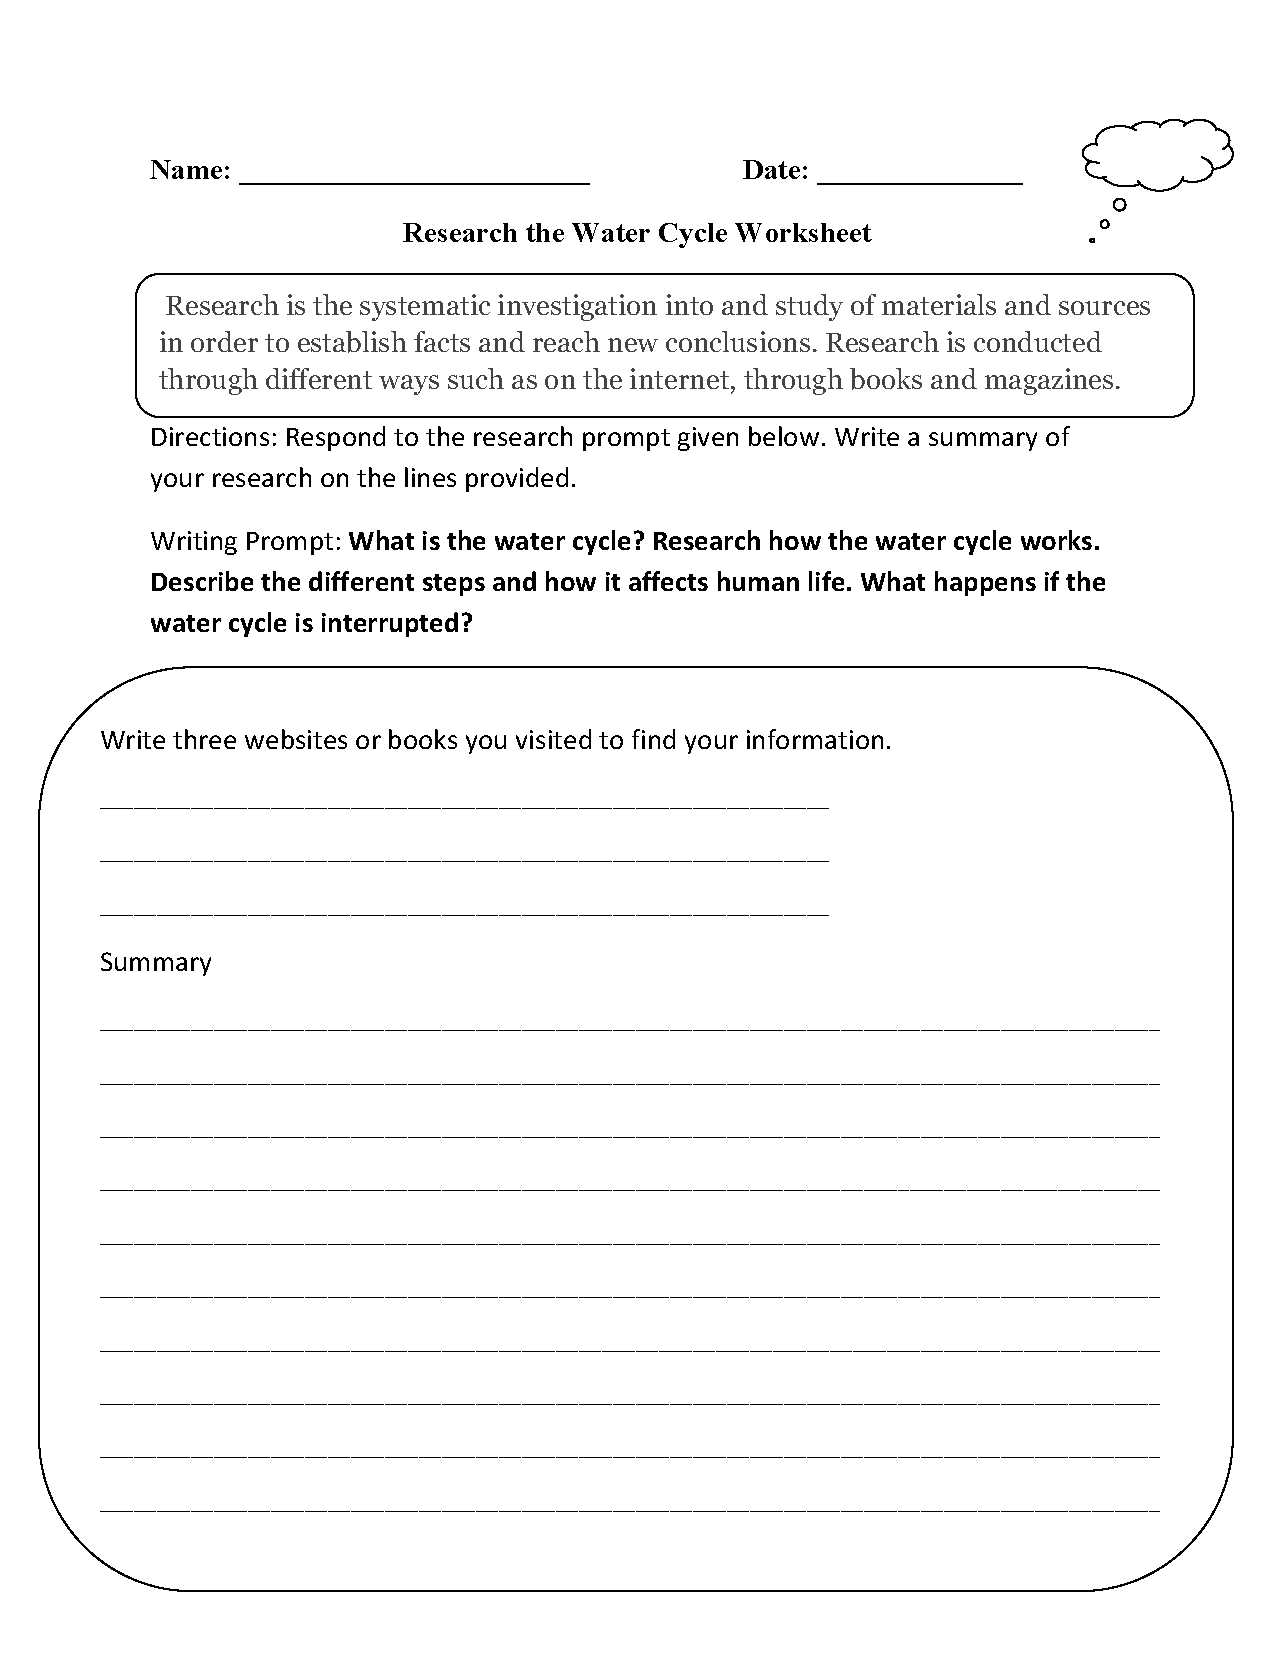 Worksheets Water Cycle Worksheets research worksheets the water cycle worksheet worksheet